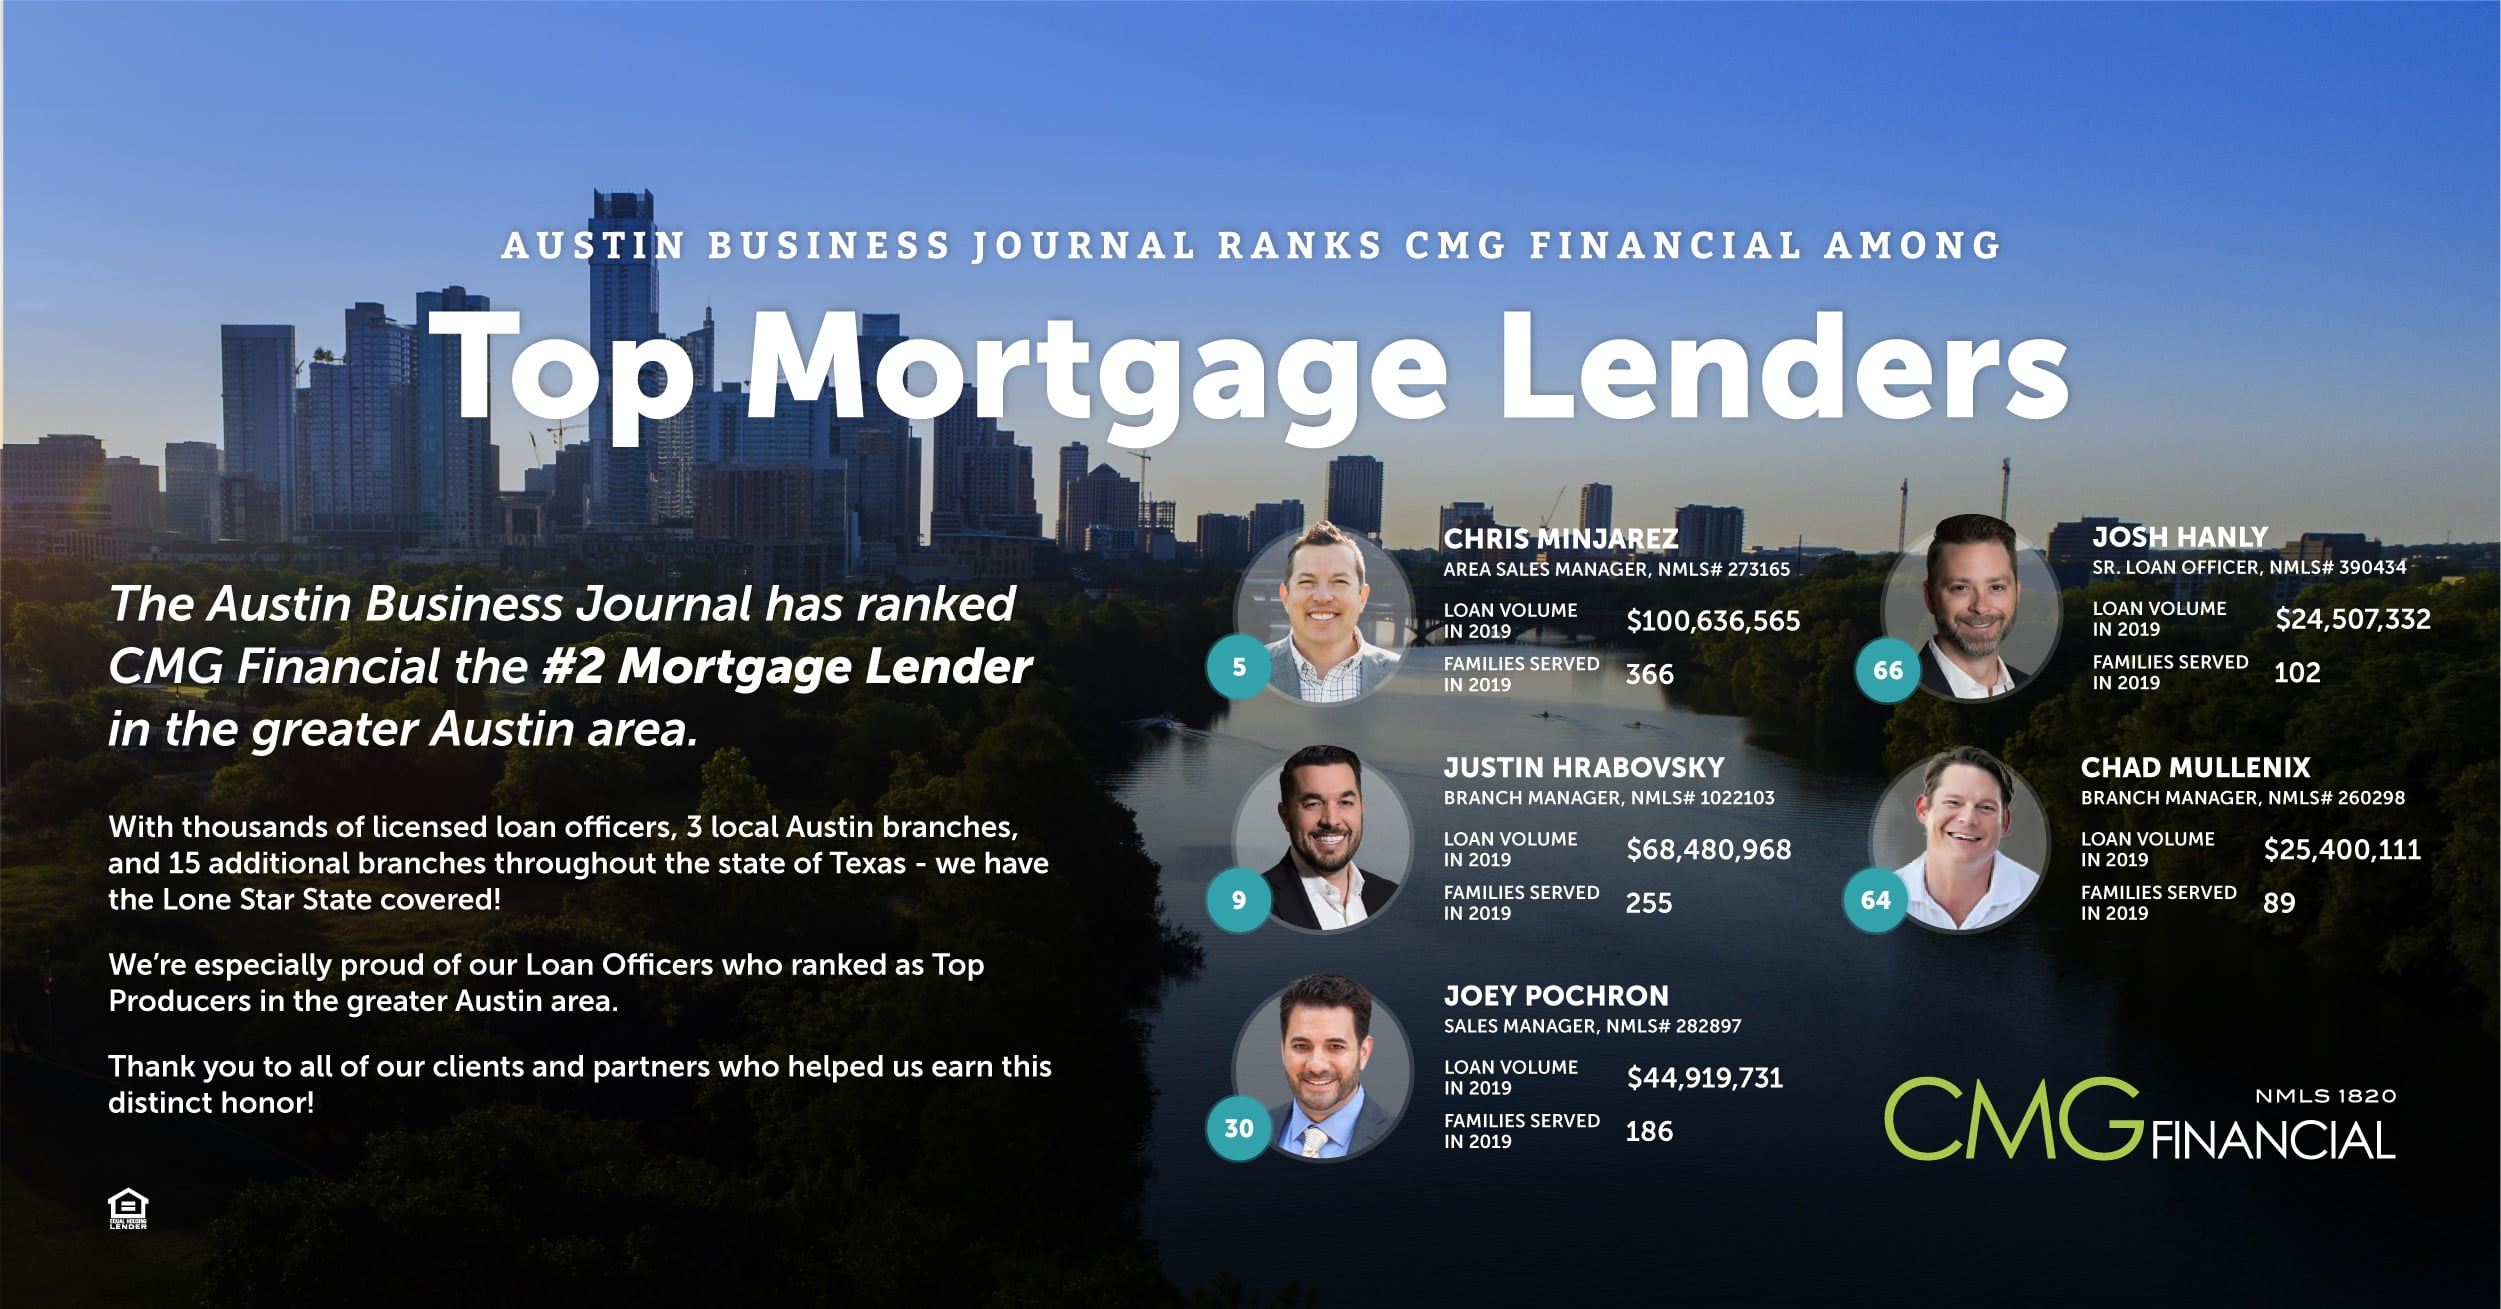 CMG Financial Ranked Among Top Mortgage Lenders by Austin Business Journal